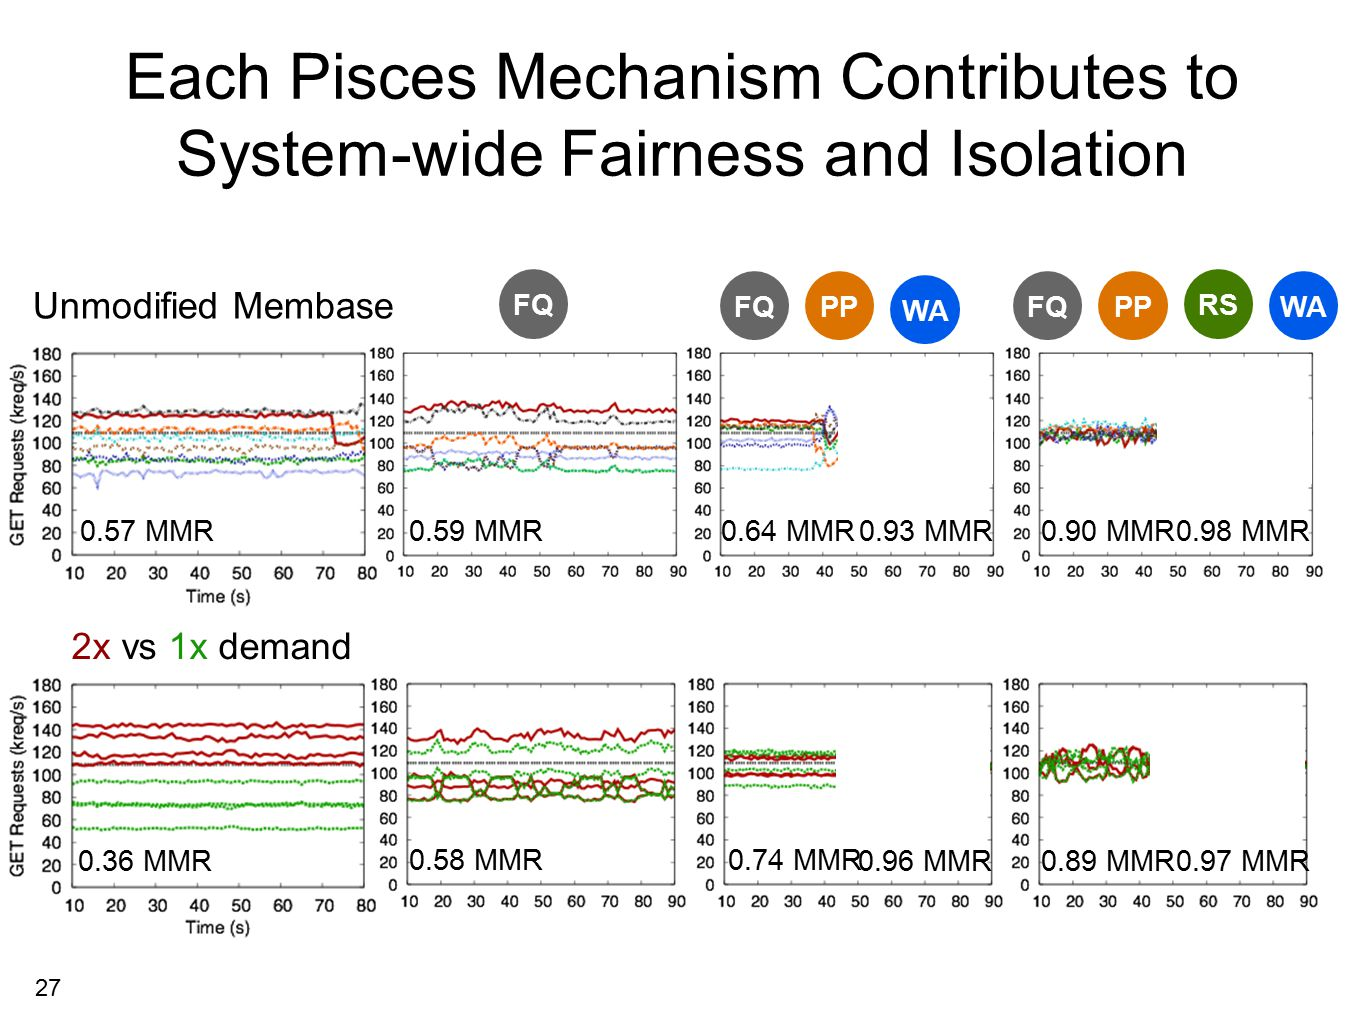 27 Each Pisces Mechanism Contributes to System-wide Fairness and Isolation Unmodified Membase 0.59 MMR0.93 MMR0.98 MMR 0.36 MMR 0.58 MMR0.74 MMR RS WA PPFQWAPPFQ 0.90 MMR 0.96 MMR0.97 MMR0.89 MMR 0.57 MMR FQ 2x vs 1x demand usuallysometimesalways RS PPWA W A2 W B2 FQ 0.64 MMR